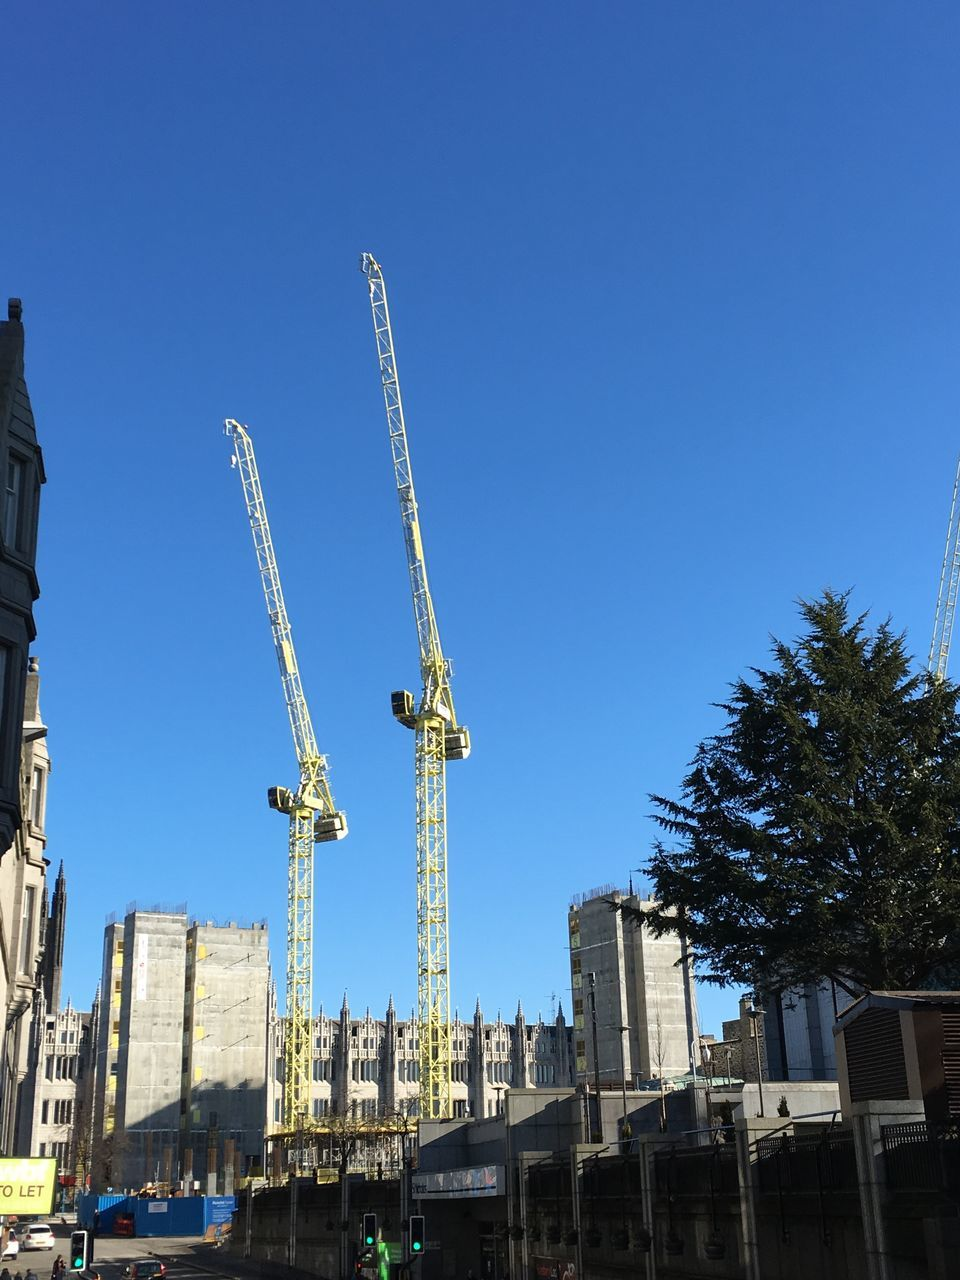 architecture, built structure, building exterior, blue, low angle view, development, clear sky, day, construction site, crane - construction machinery, no people, residential building, outdoors, progress, city, sky